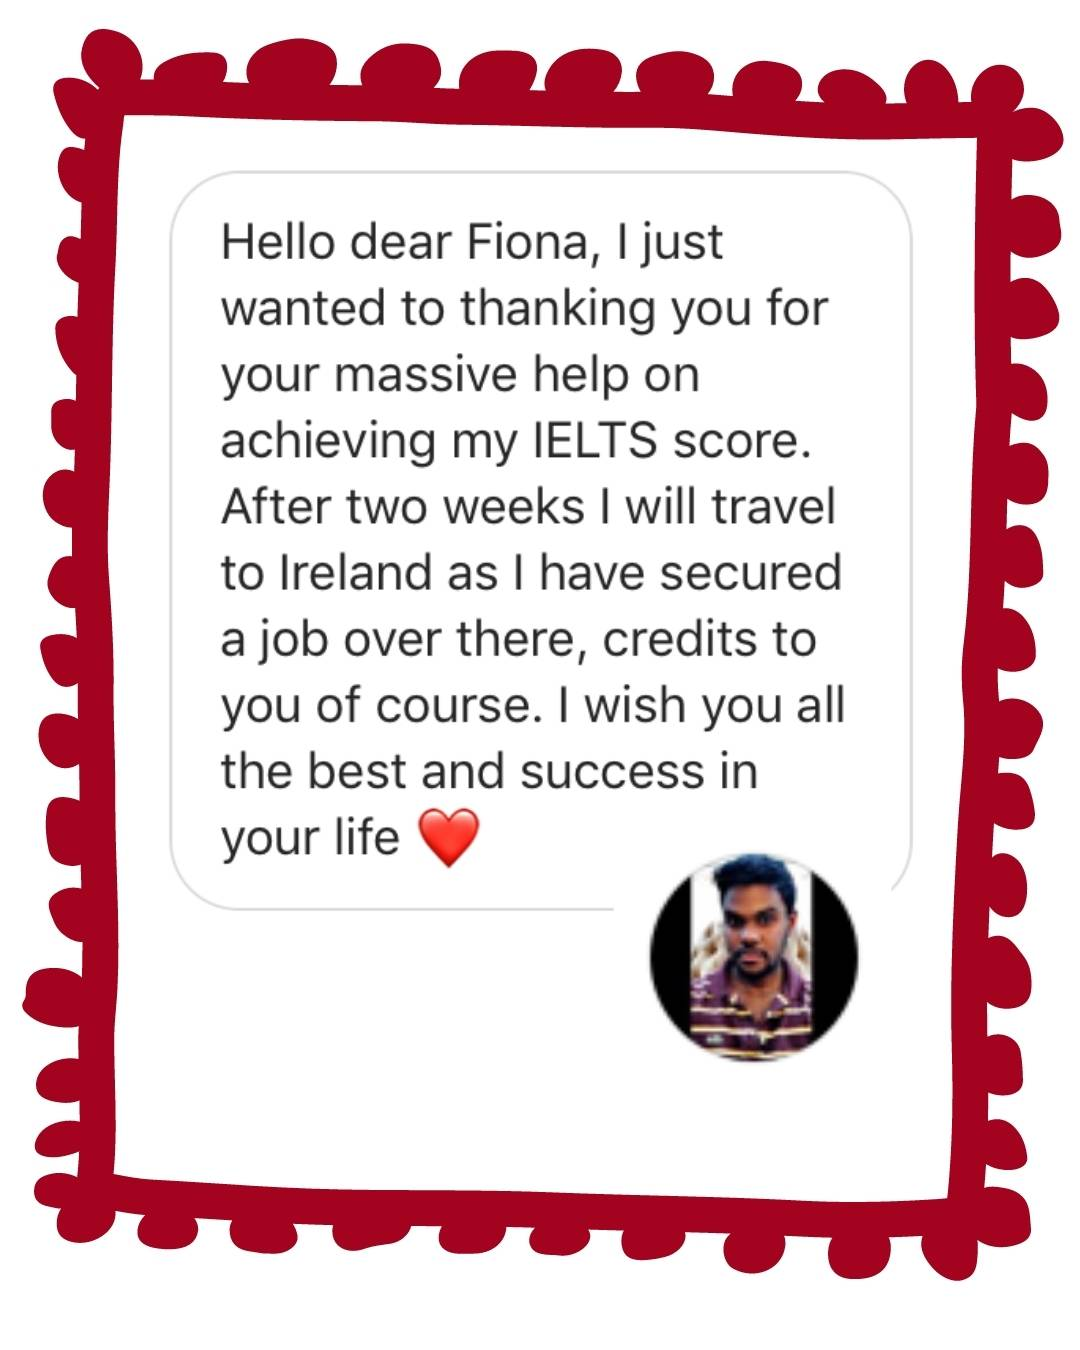 IELTS with Fiona reviews Mohammed